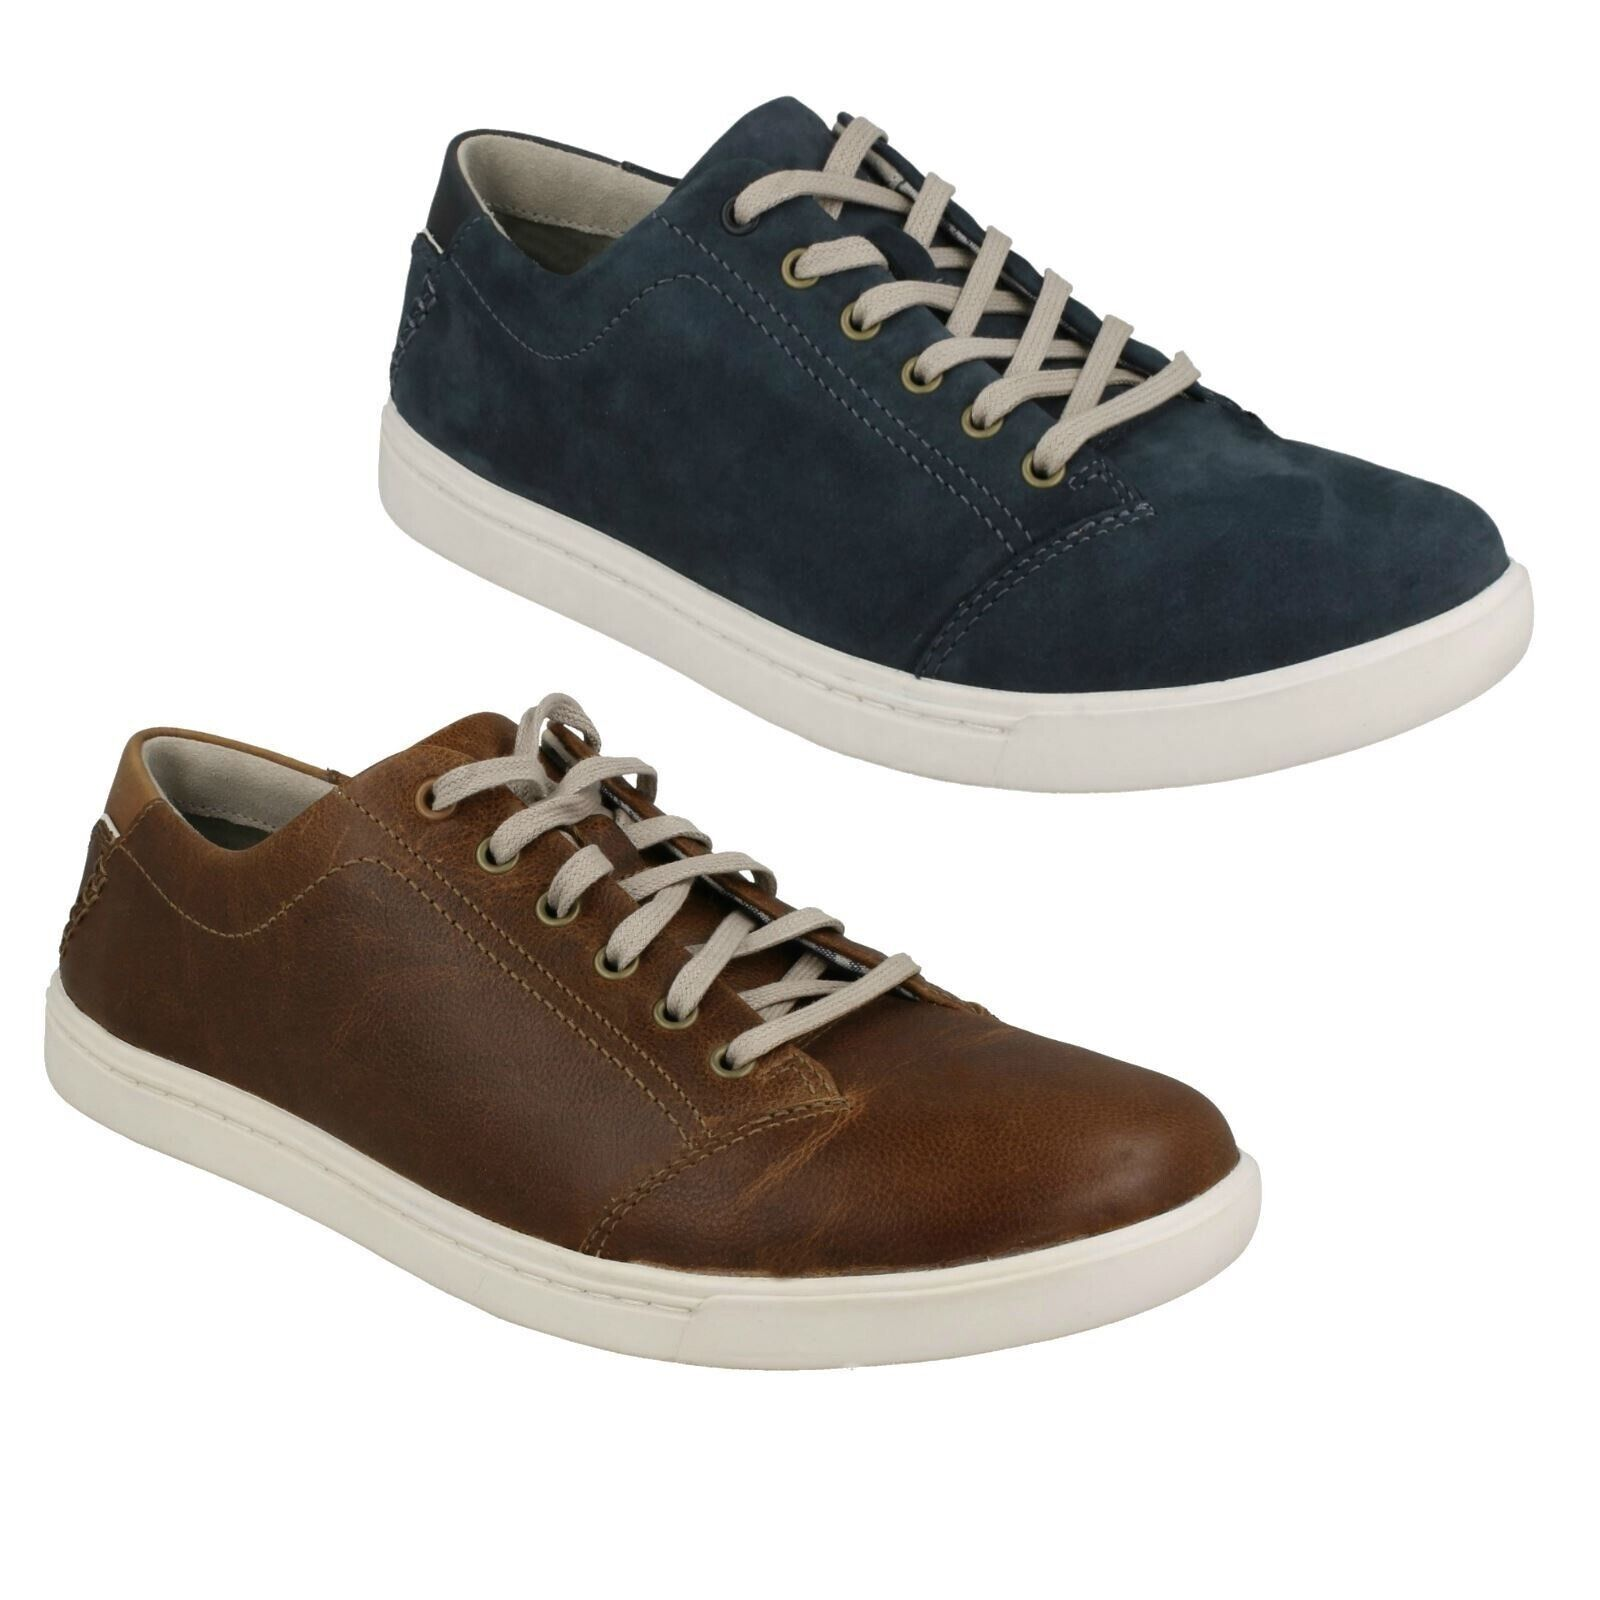 NEWOOD STREET MENS CLARKS LACE UP LEATHER CASUAL OUTDOOR TRAINERS SHOES PUMPS